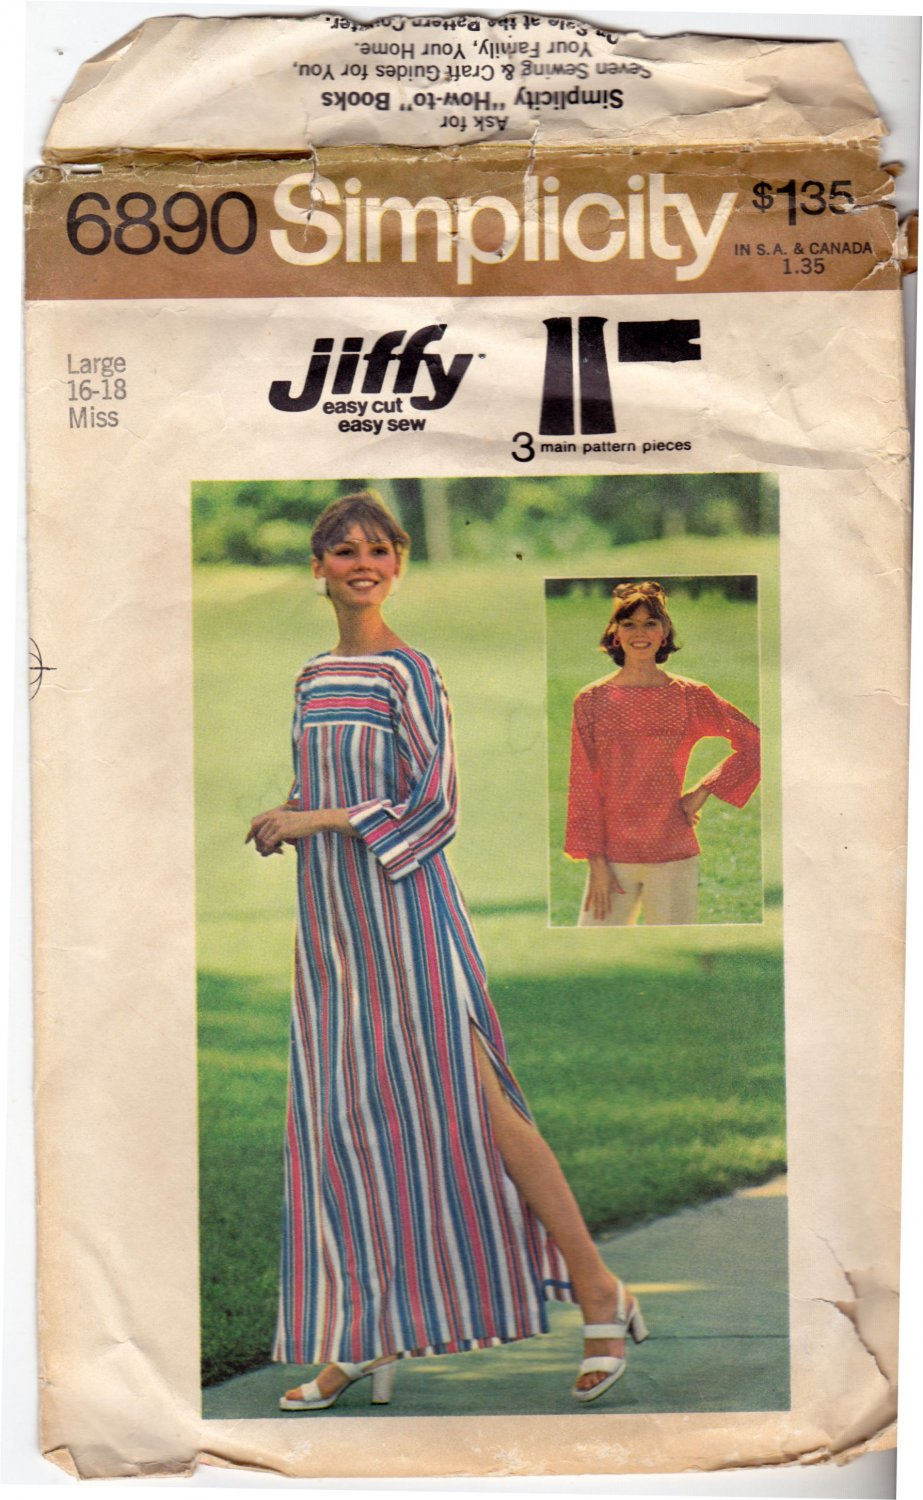 Simplicity Jiffy 6890 Pattern Large 16 18 Bust 38 40 Caftan or Top Cut, Complete Vintage 1970s